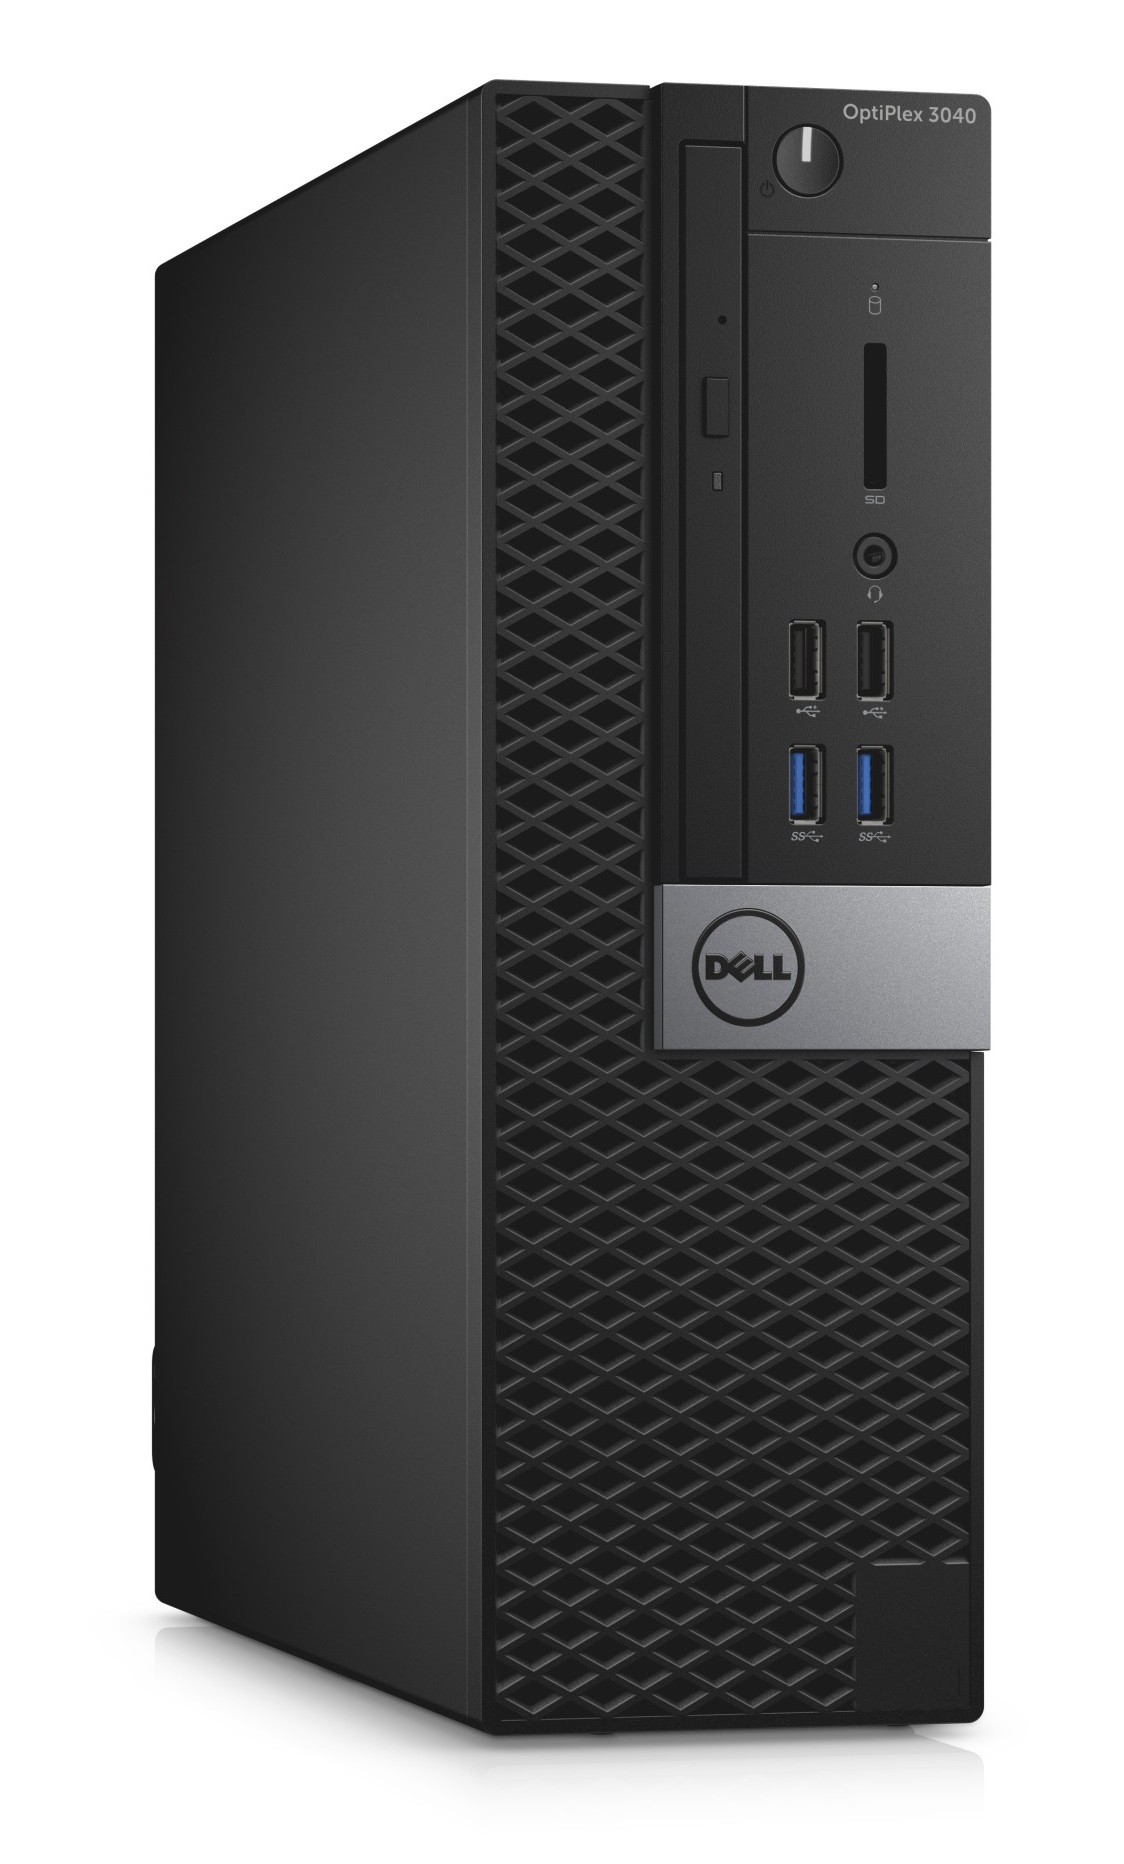 DELL OptiPlex SFF 3040 Core i3-6100/4GB/500GB/Intel HD/Win7 PRO - Win 10 64bit/3Yr NBD